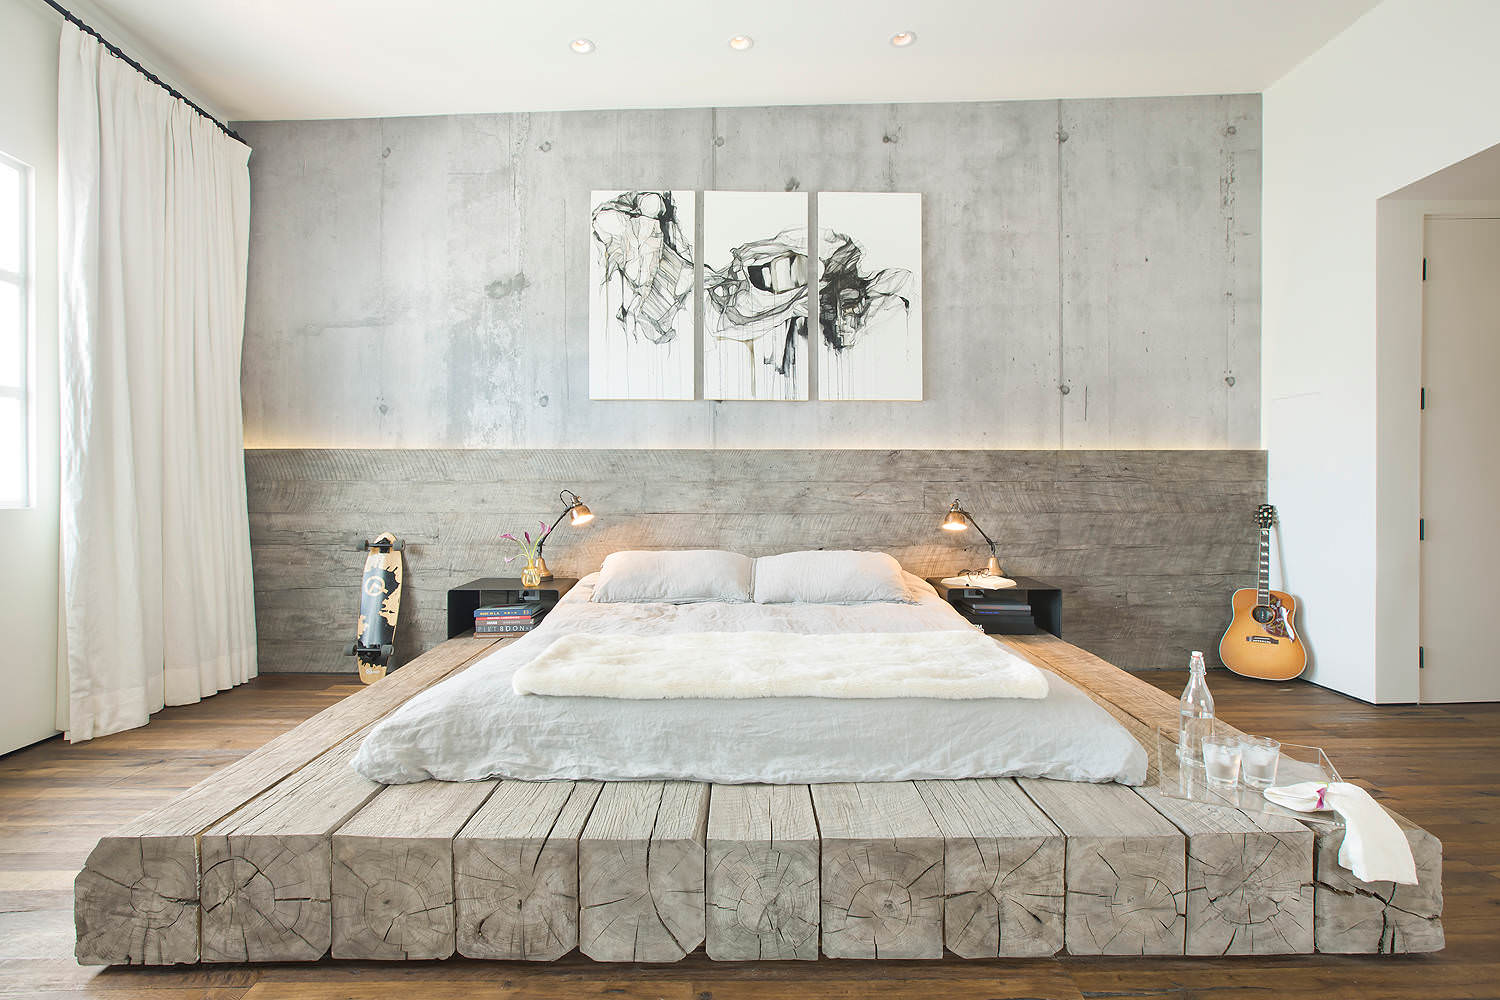 20+ Industrial Bedroom Designs, Decorating Ideas